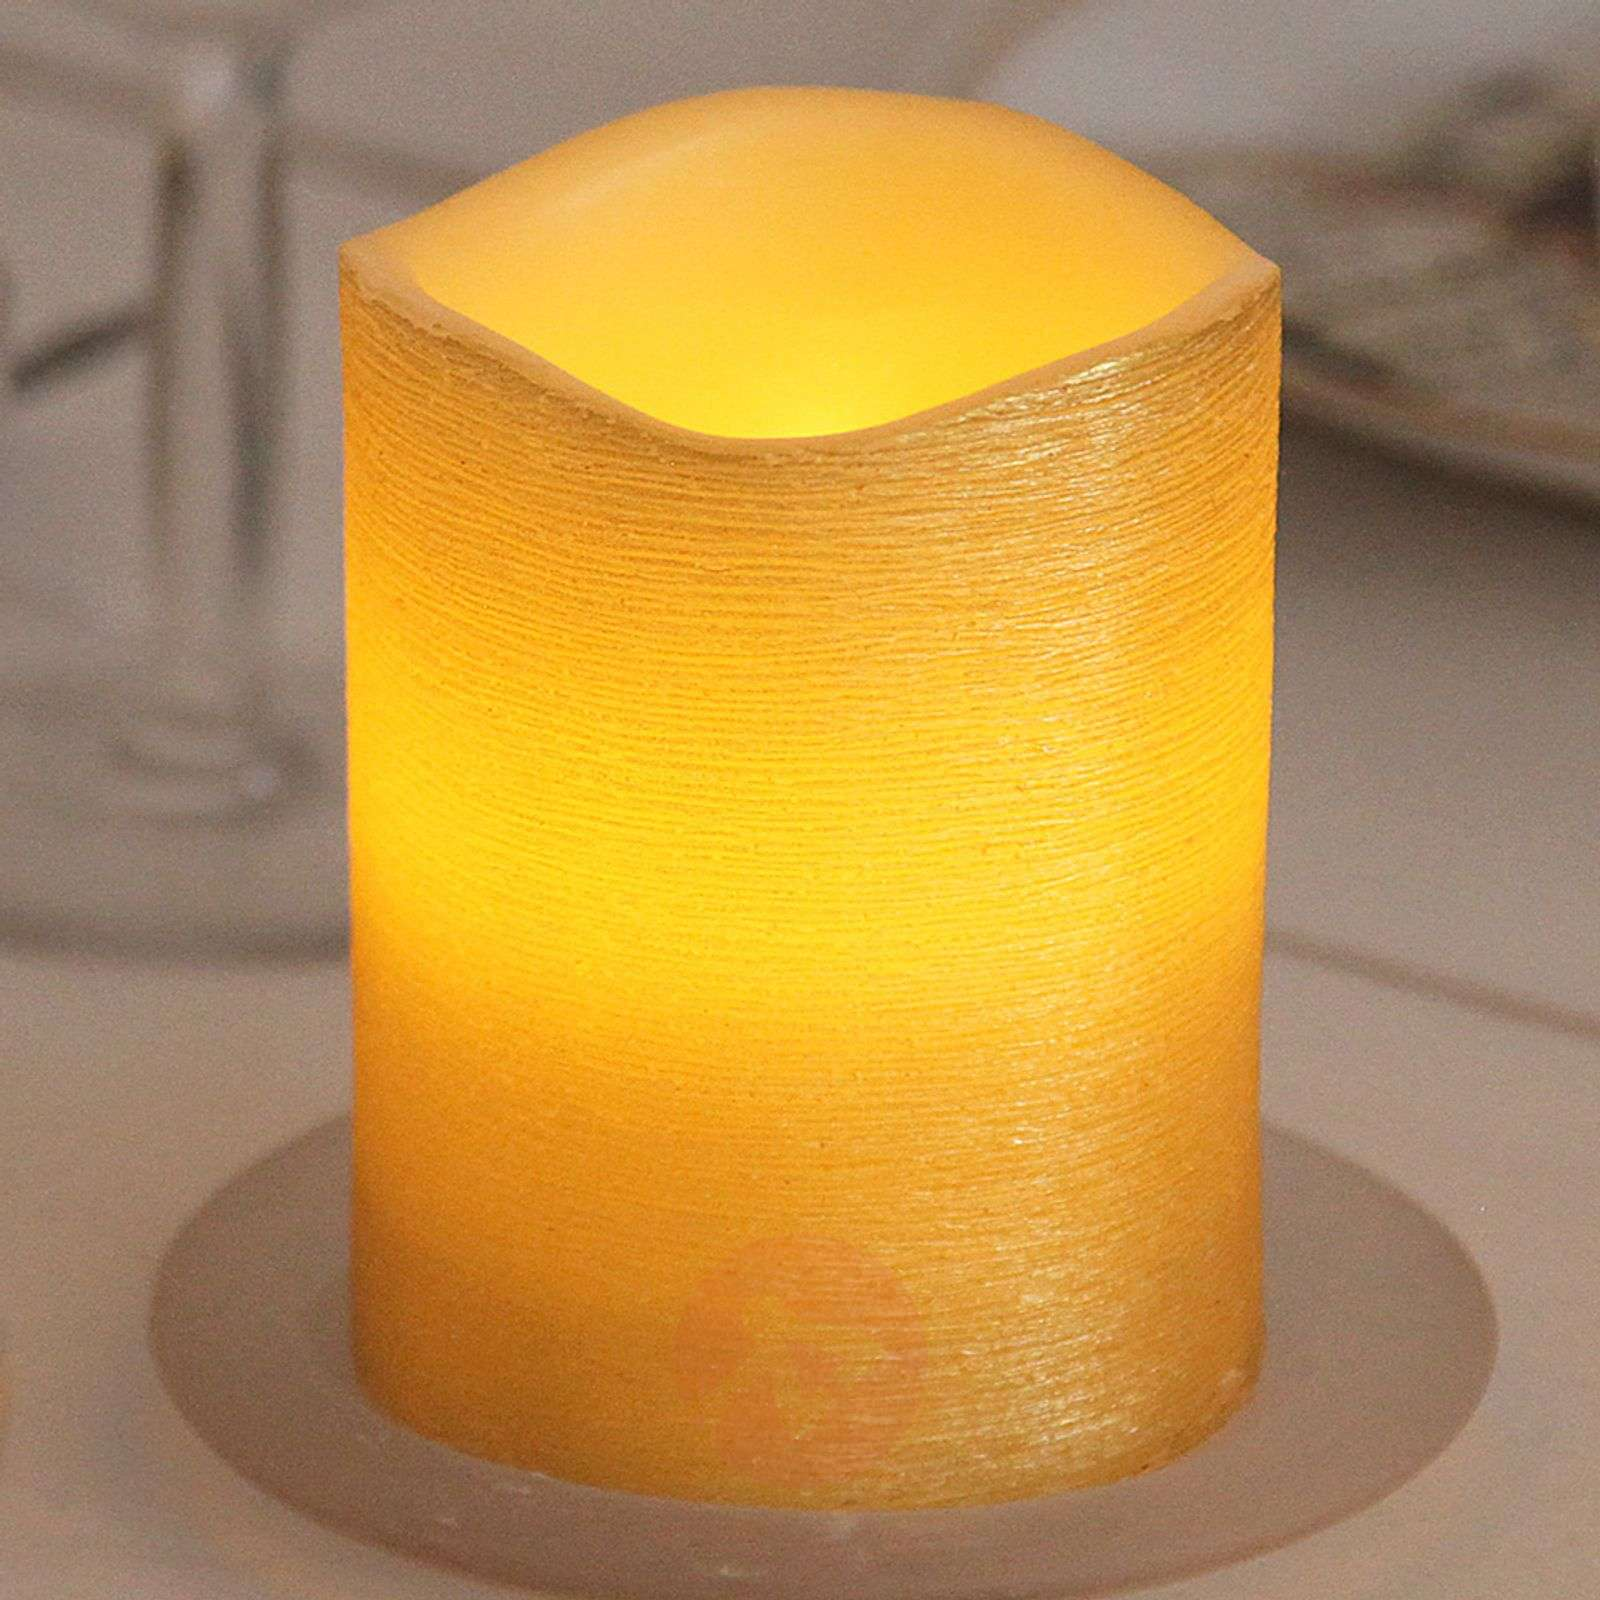 Real waxLED candle Linda structured 12.5 cm-1522542-01